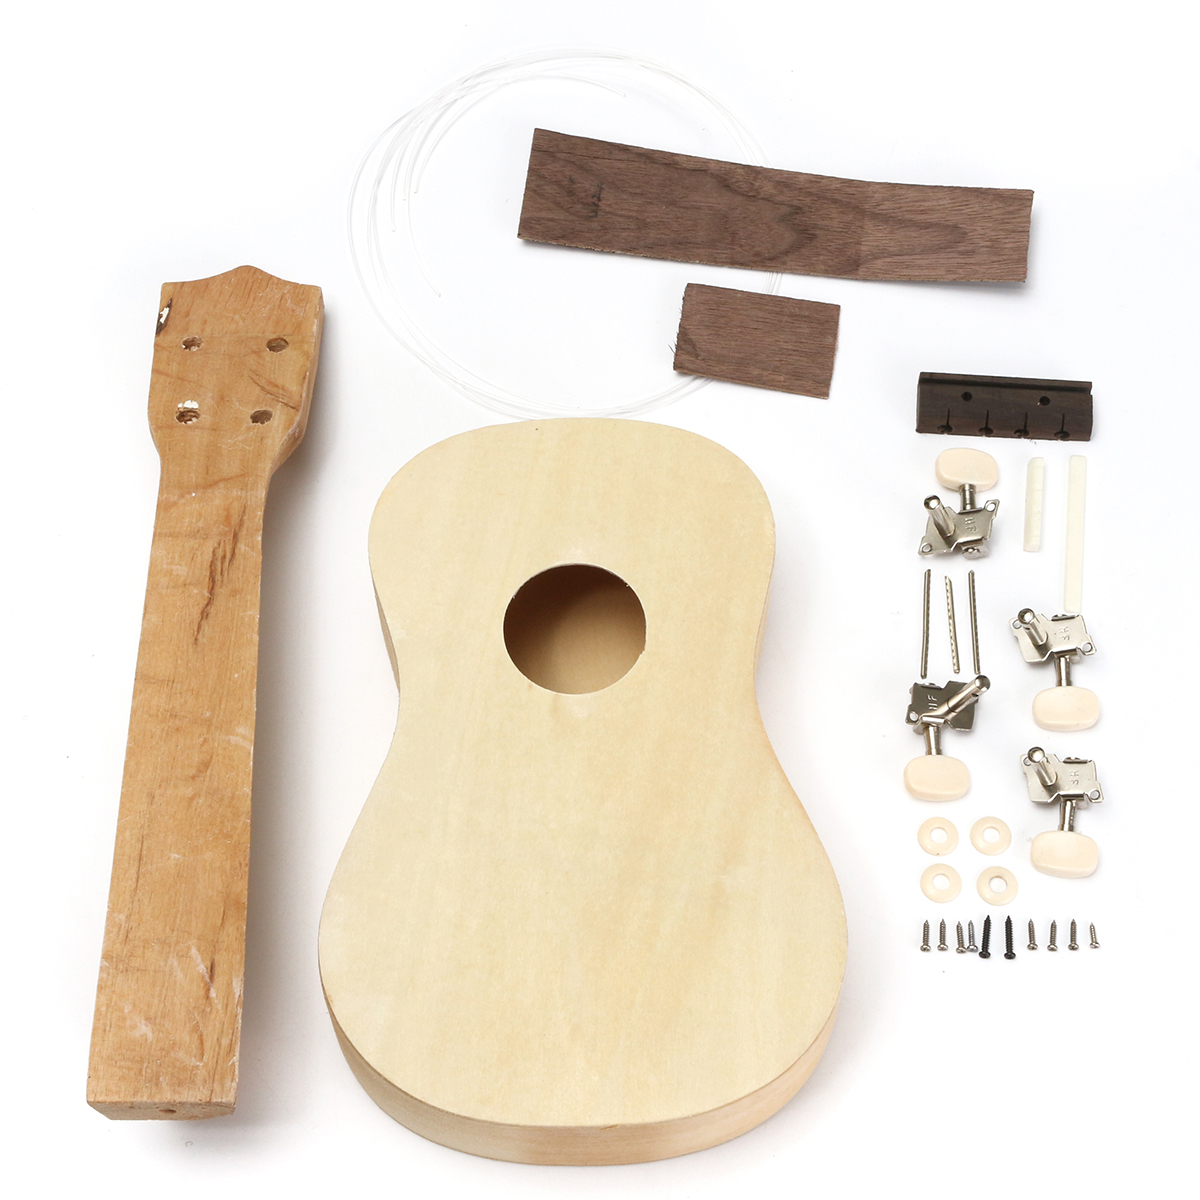 "21"" Hawaii Ukulele Soprano Wooden Musical Instrument Hawaiian Guitar Uke Kit Gift DIY by"